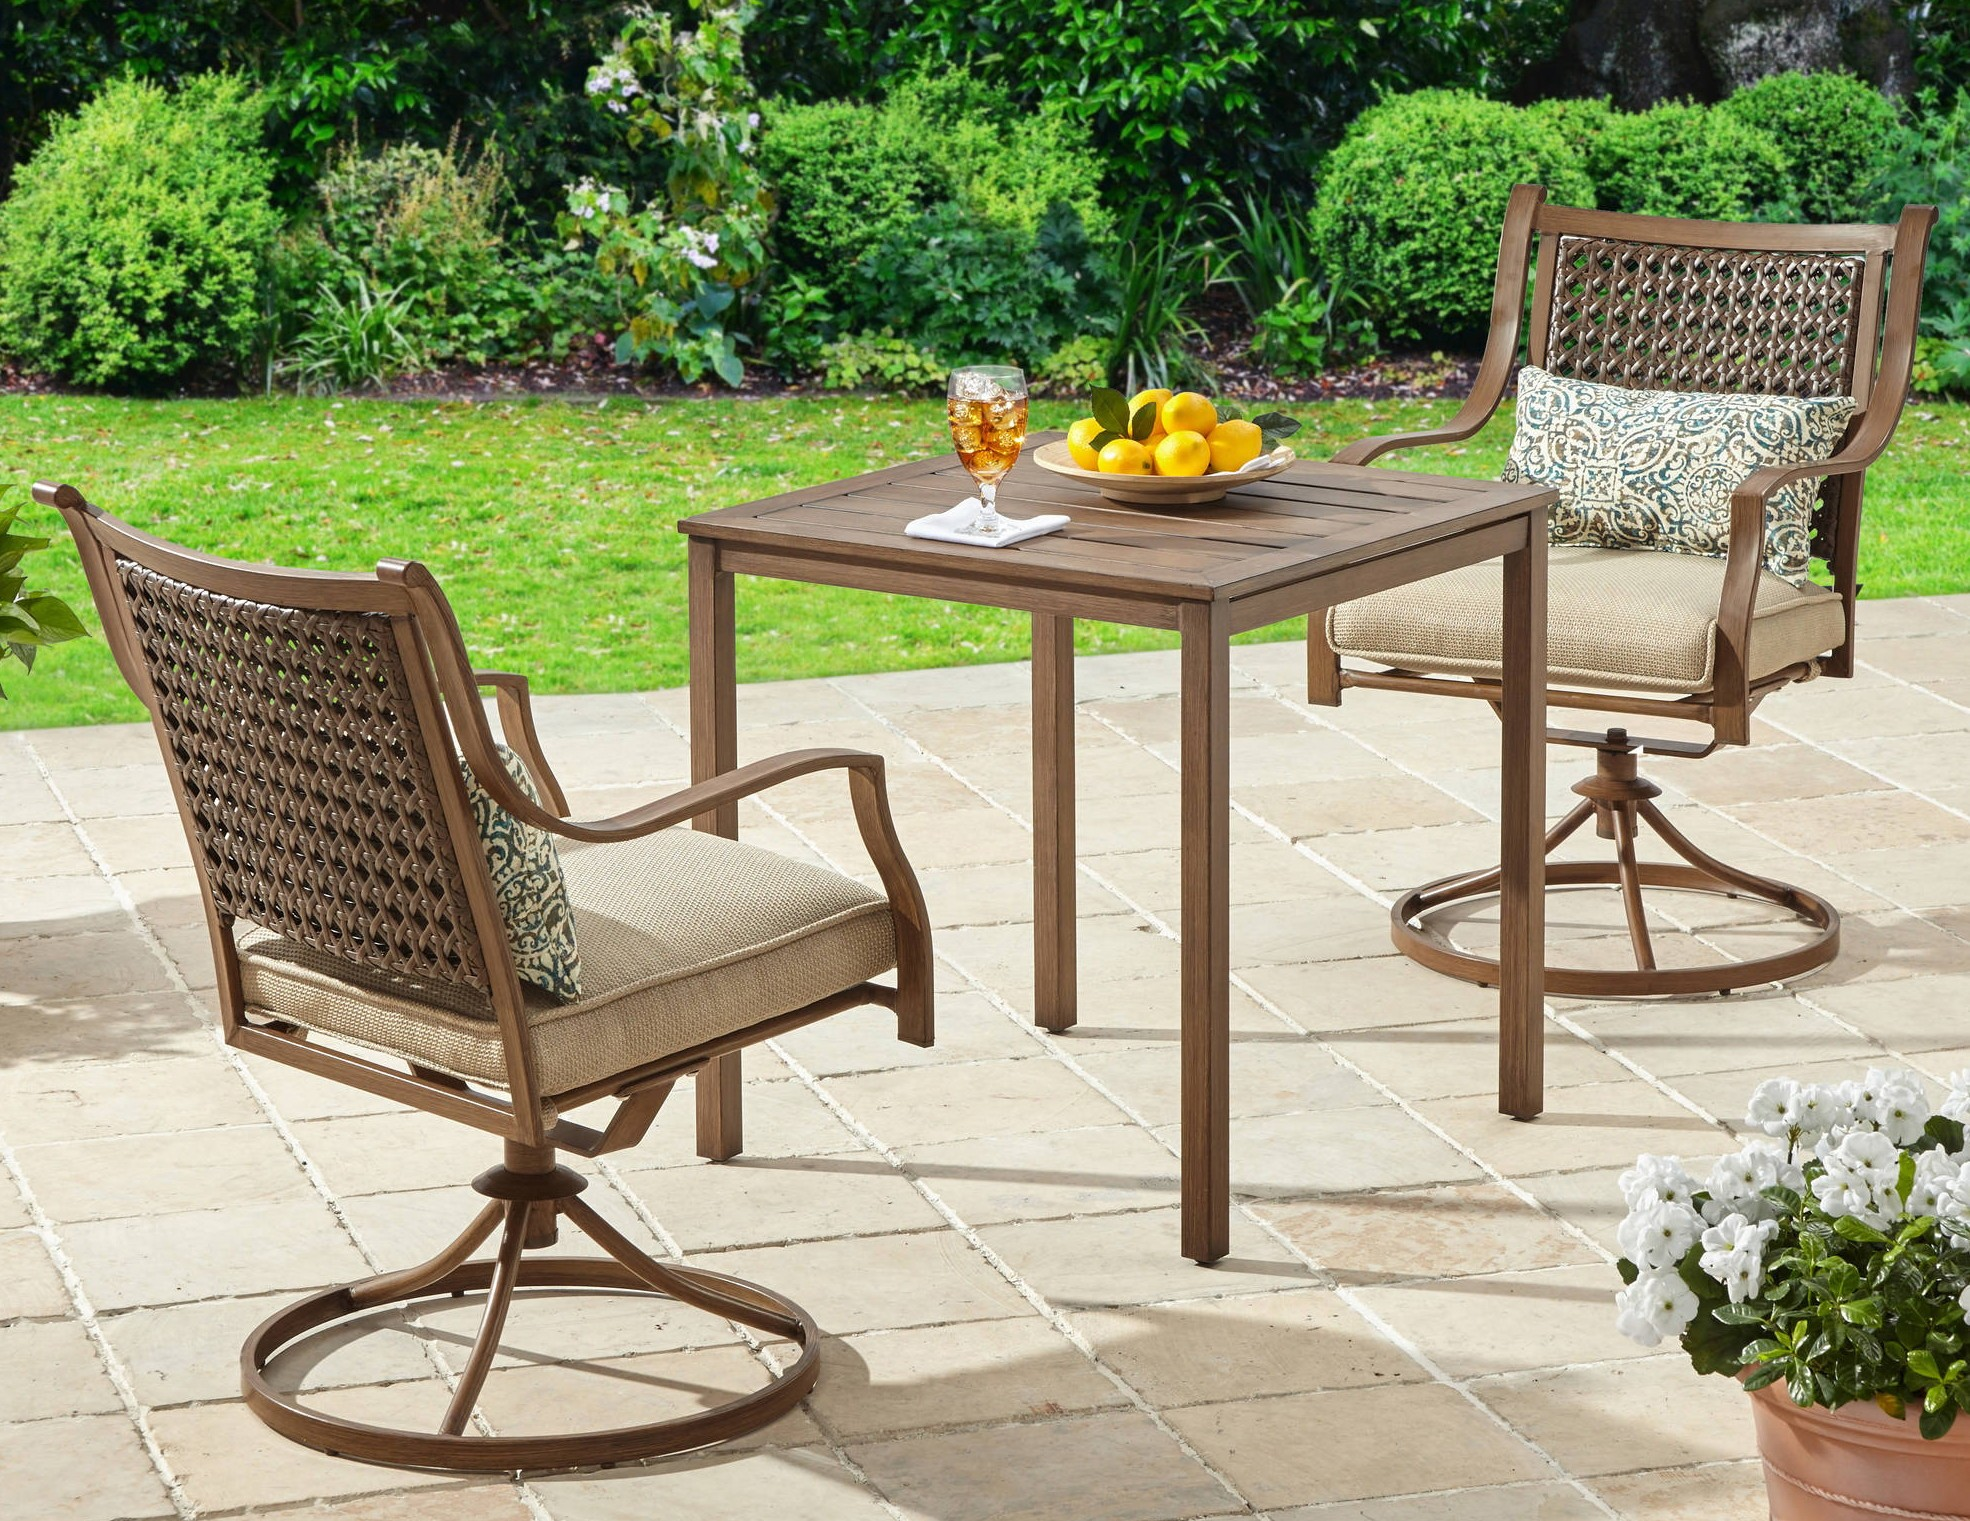 Rustic Outdoor Furniture Clearance